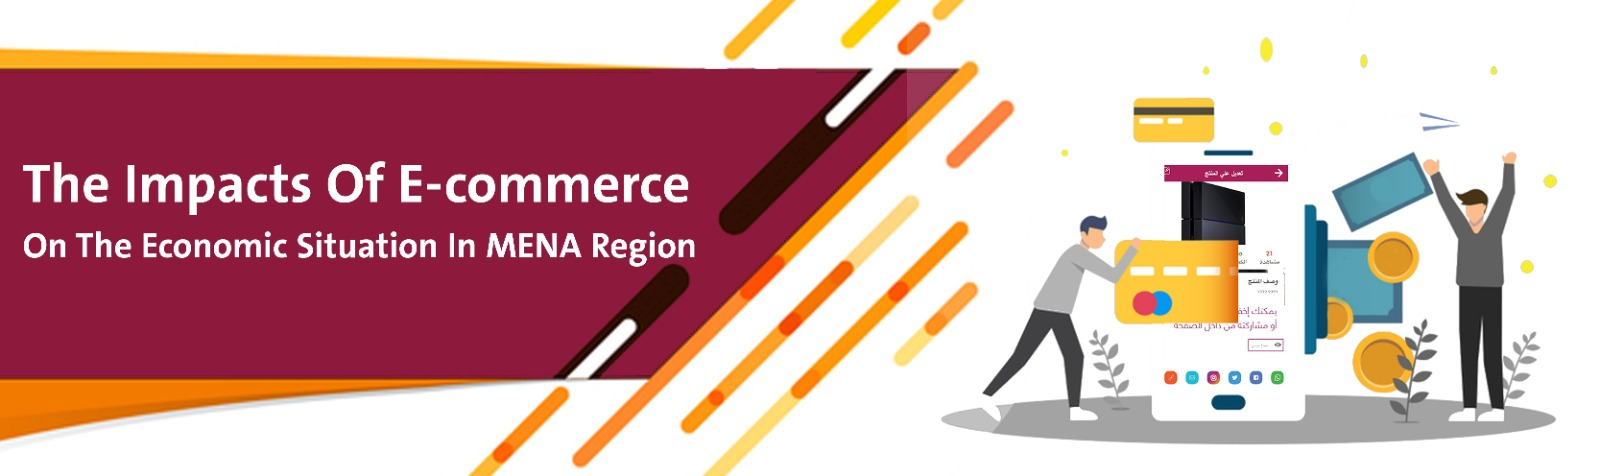 The Impacts Of E-commerce On The Economic Situation In MENA Region | Article Banner